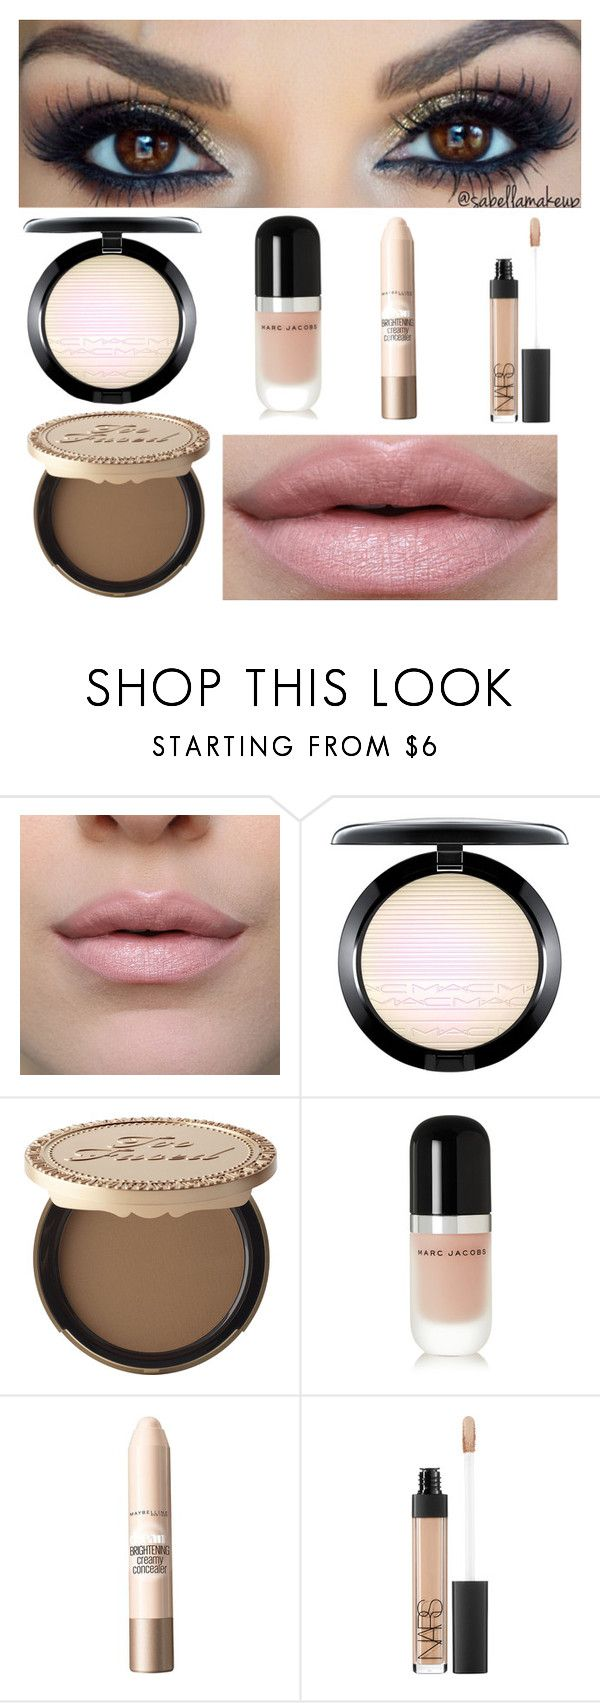 """Full face makeup"" by imagine-5sos-1d ❤ liked on Polyvore featuring beauty, MAC Cosmetics, Too Faced Cosmetics, Marc Jacobs, Maybelline, NARS Cosmetics and Imagine5sos1d_Sets"